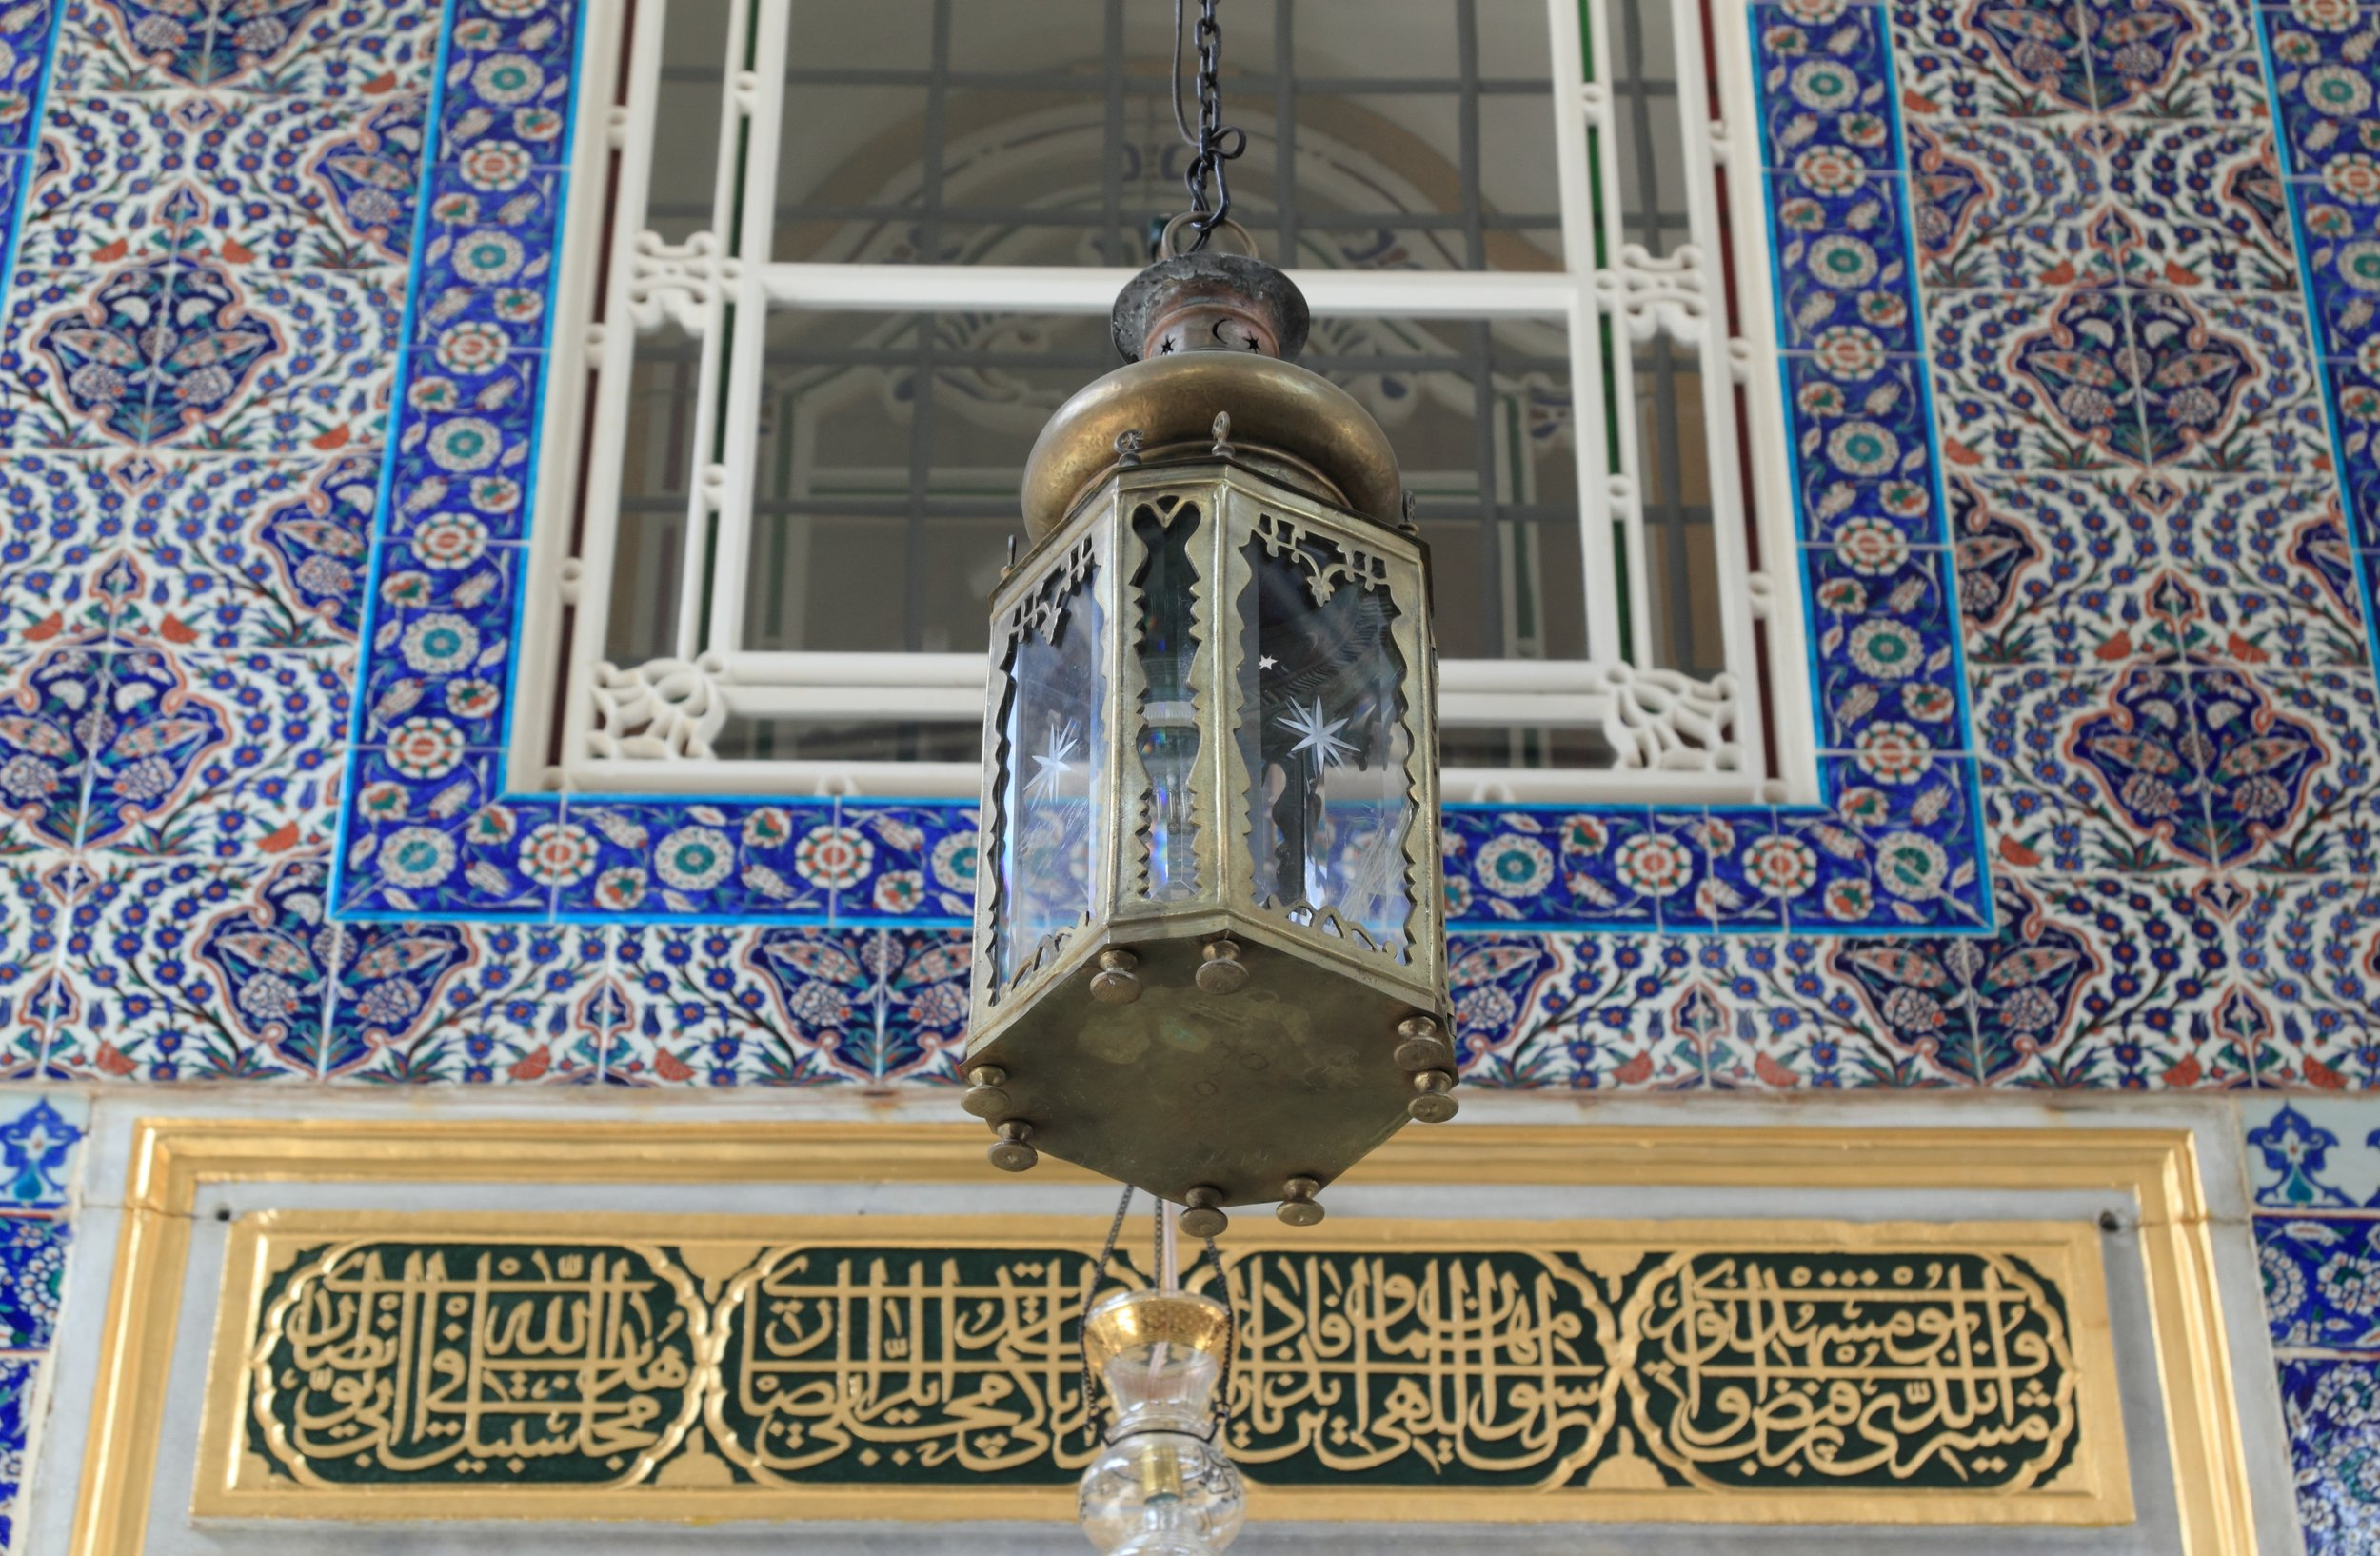 Decorative blue tiles of Sultan Ahmet Mosque - better known as the Blue Mosque